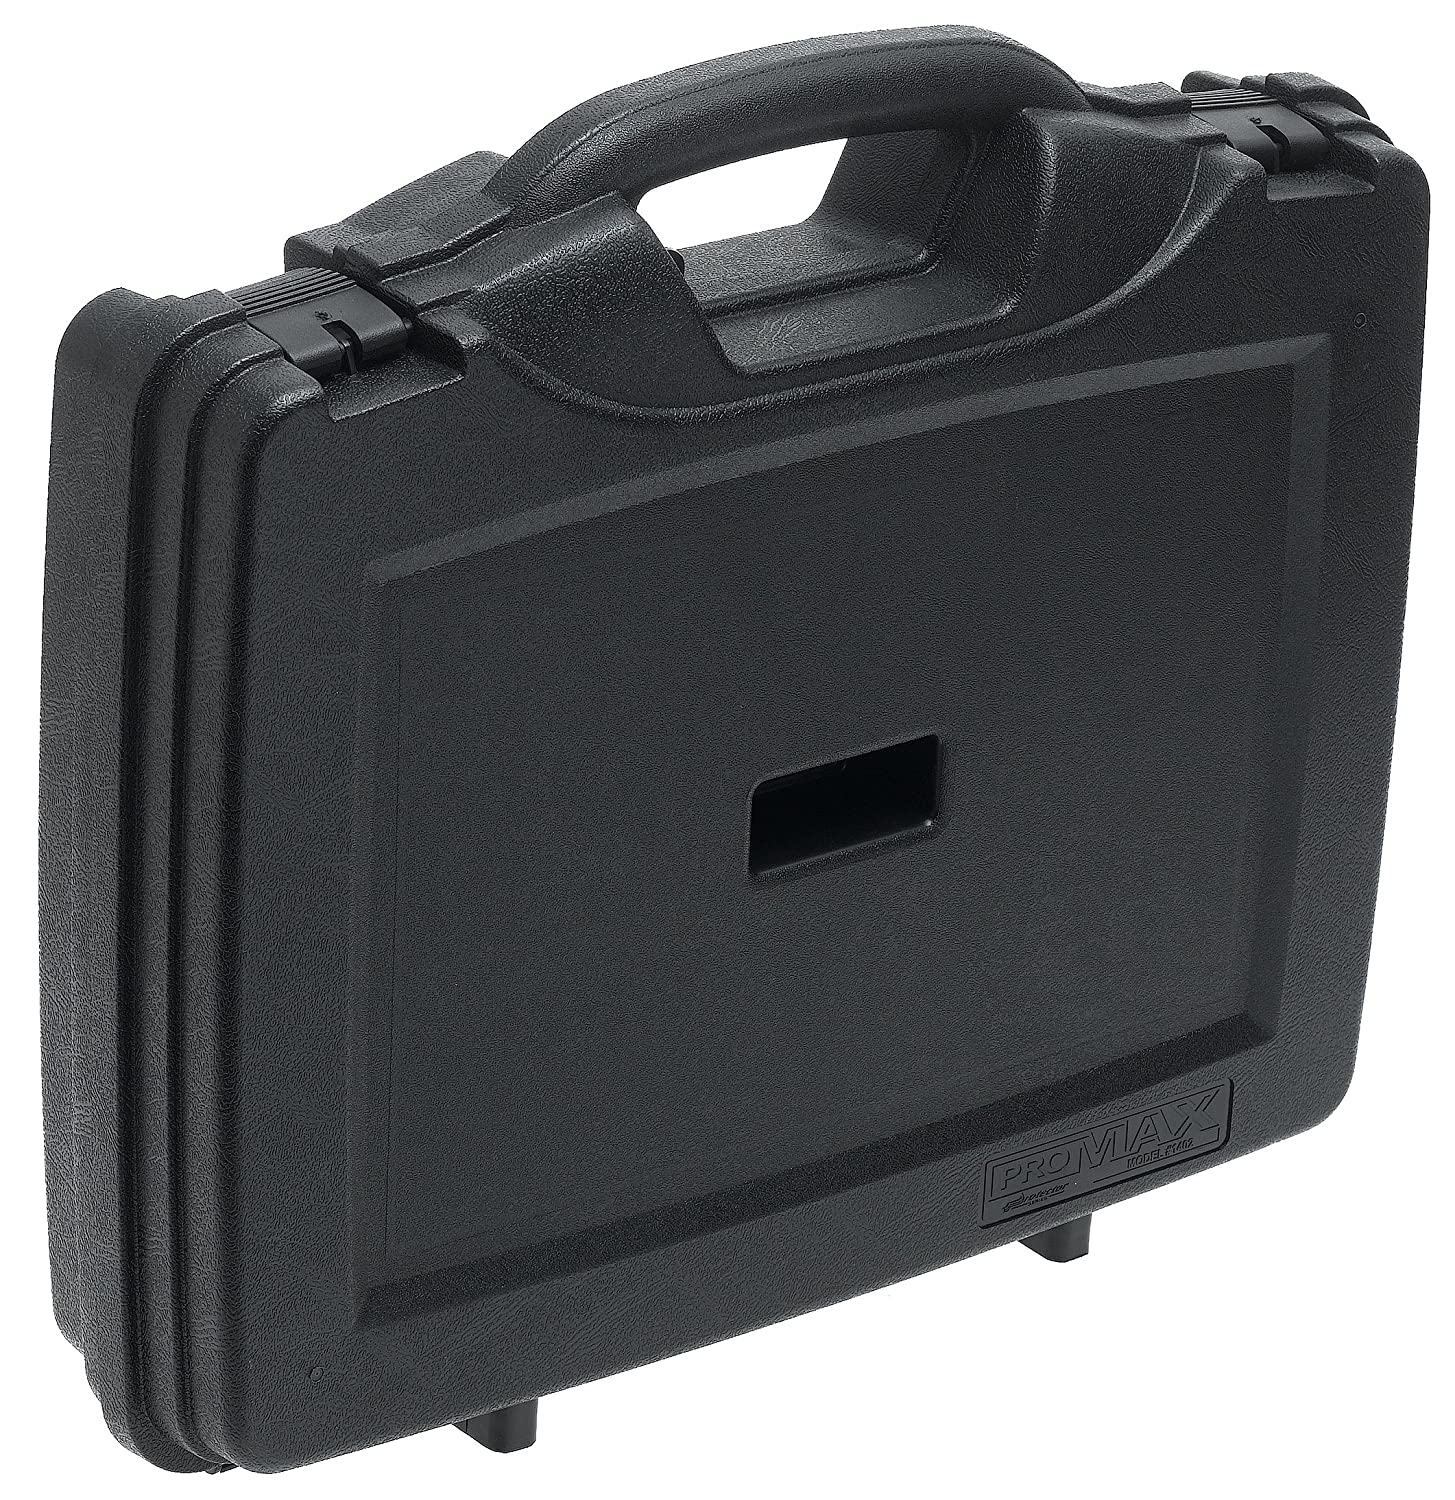 Plano Protector Pro Max Pillared Double Pistol Case 1402-01